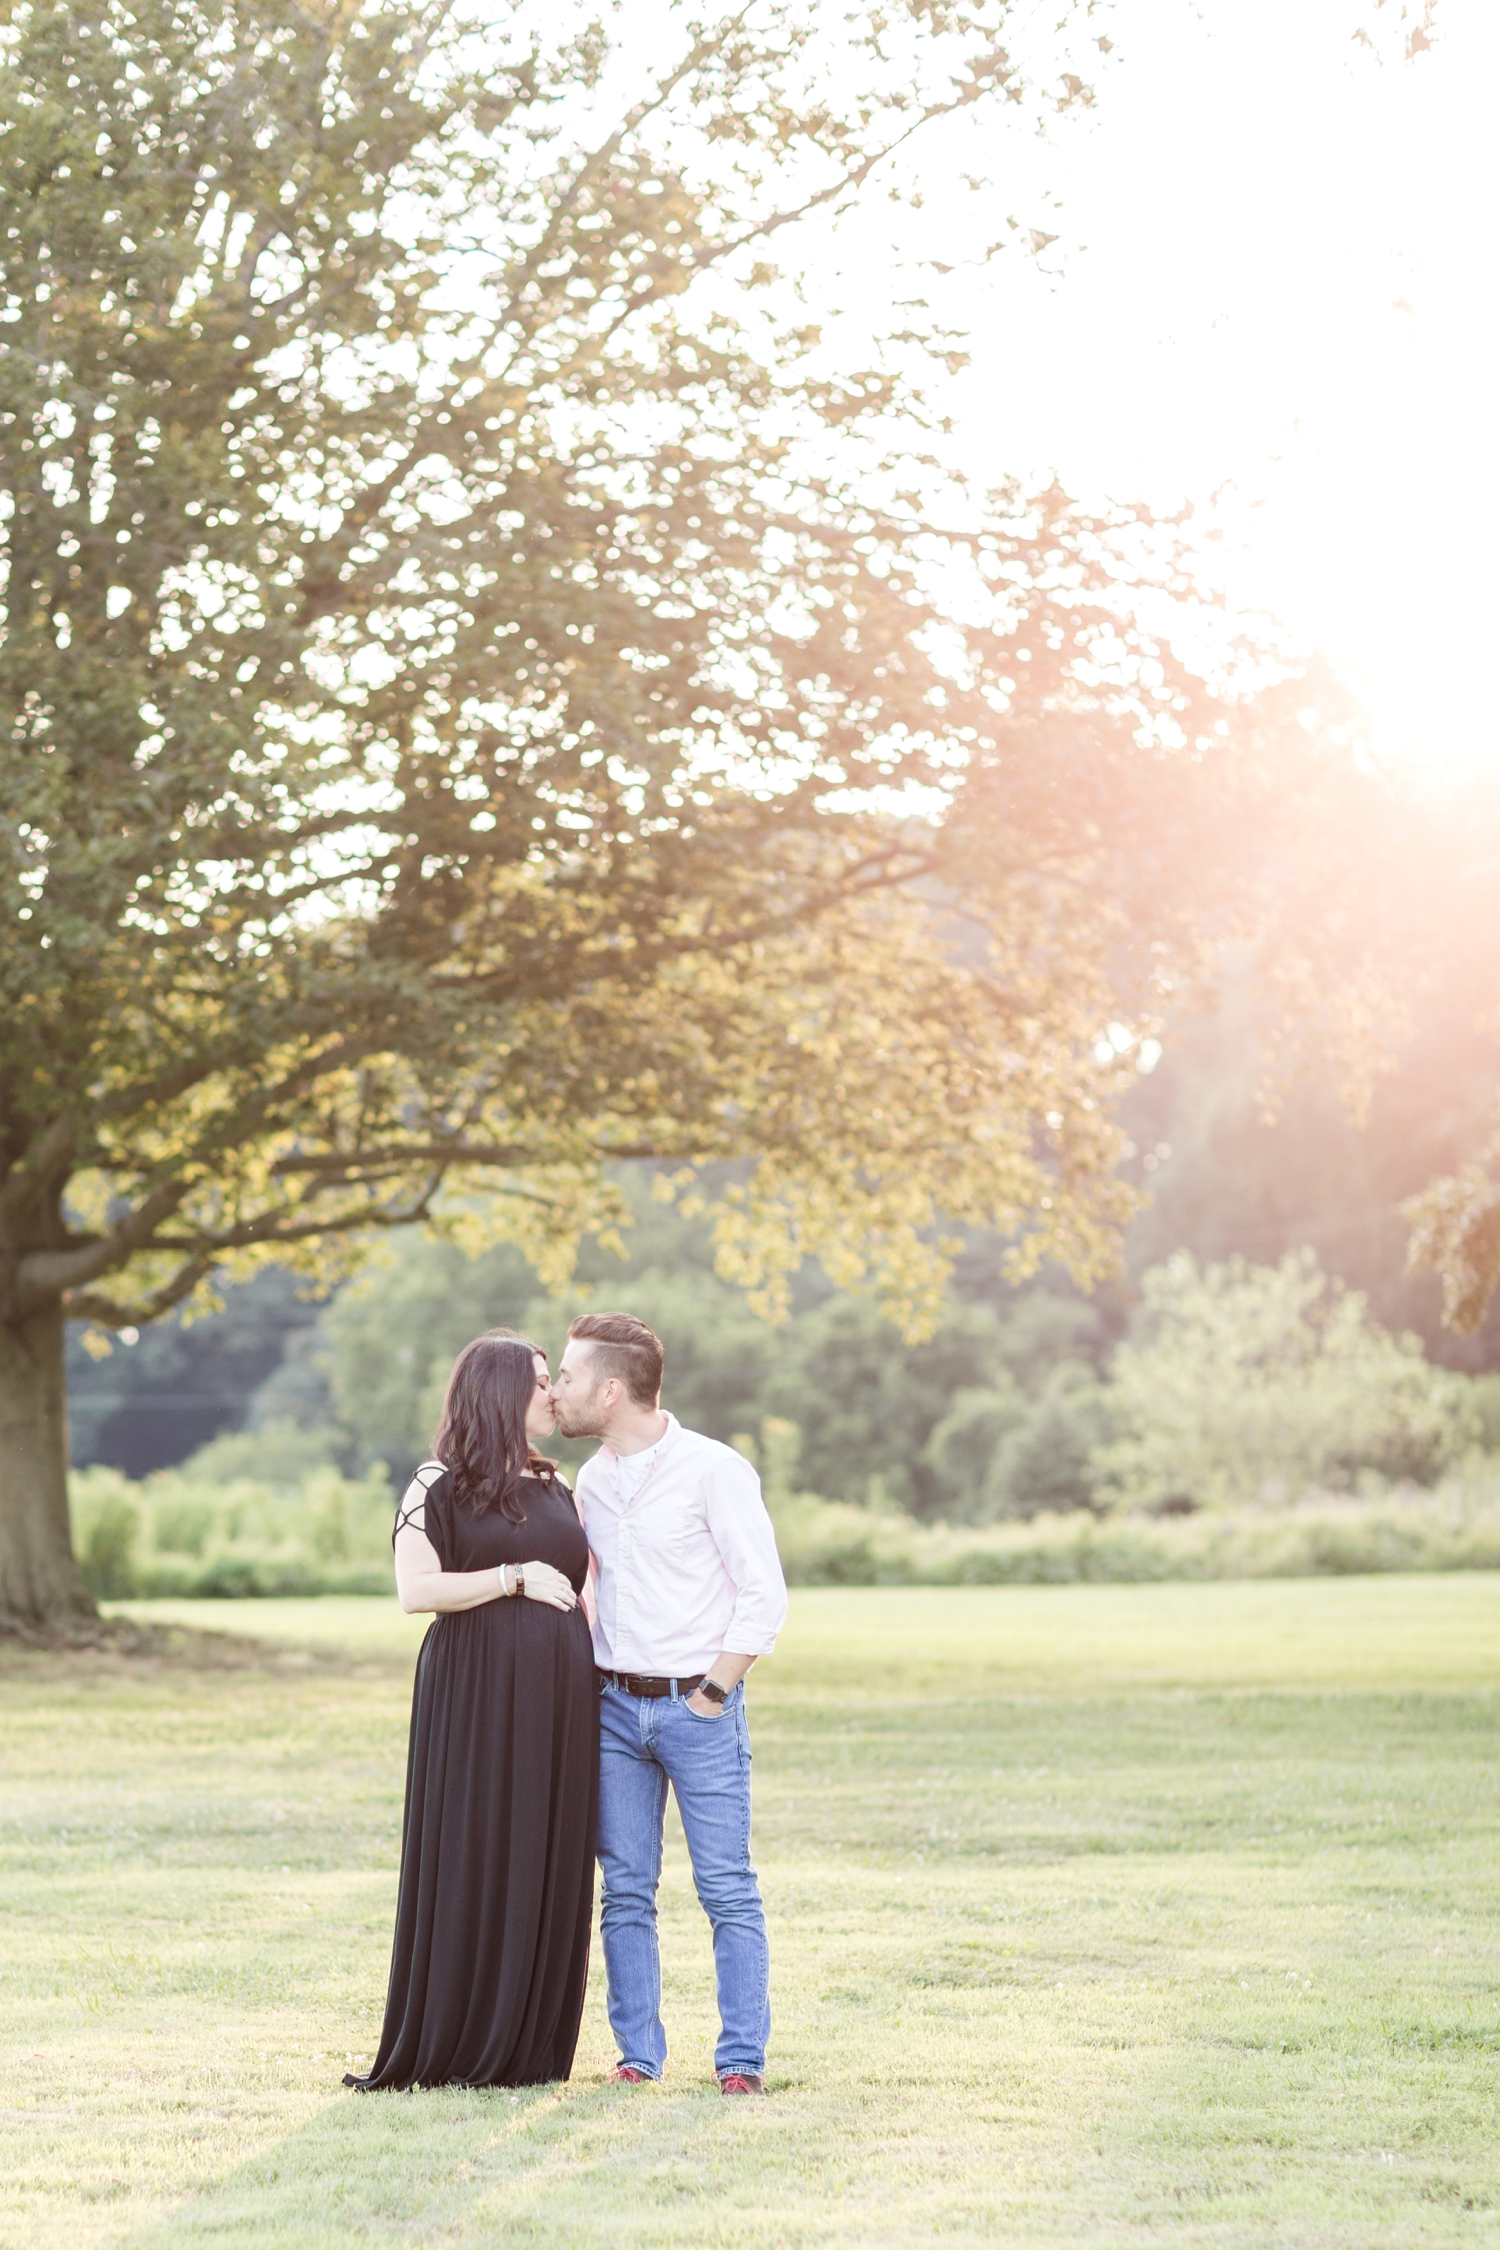 Saunders-Consroe Maternity-70_Cromwell-Valley-Park-Maryland-maternity-photographer-anna-grace-photography-photo.jpg